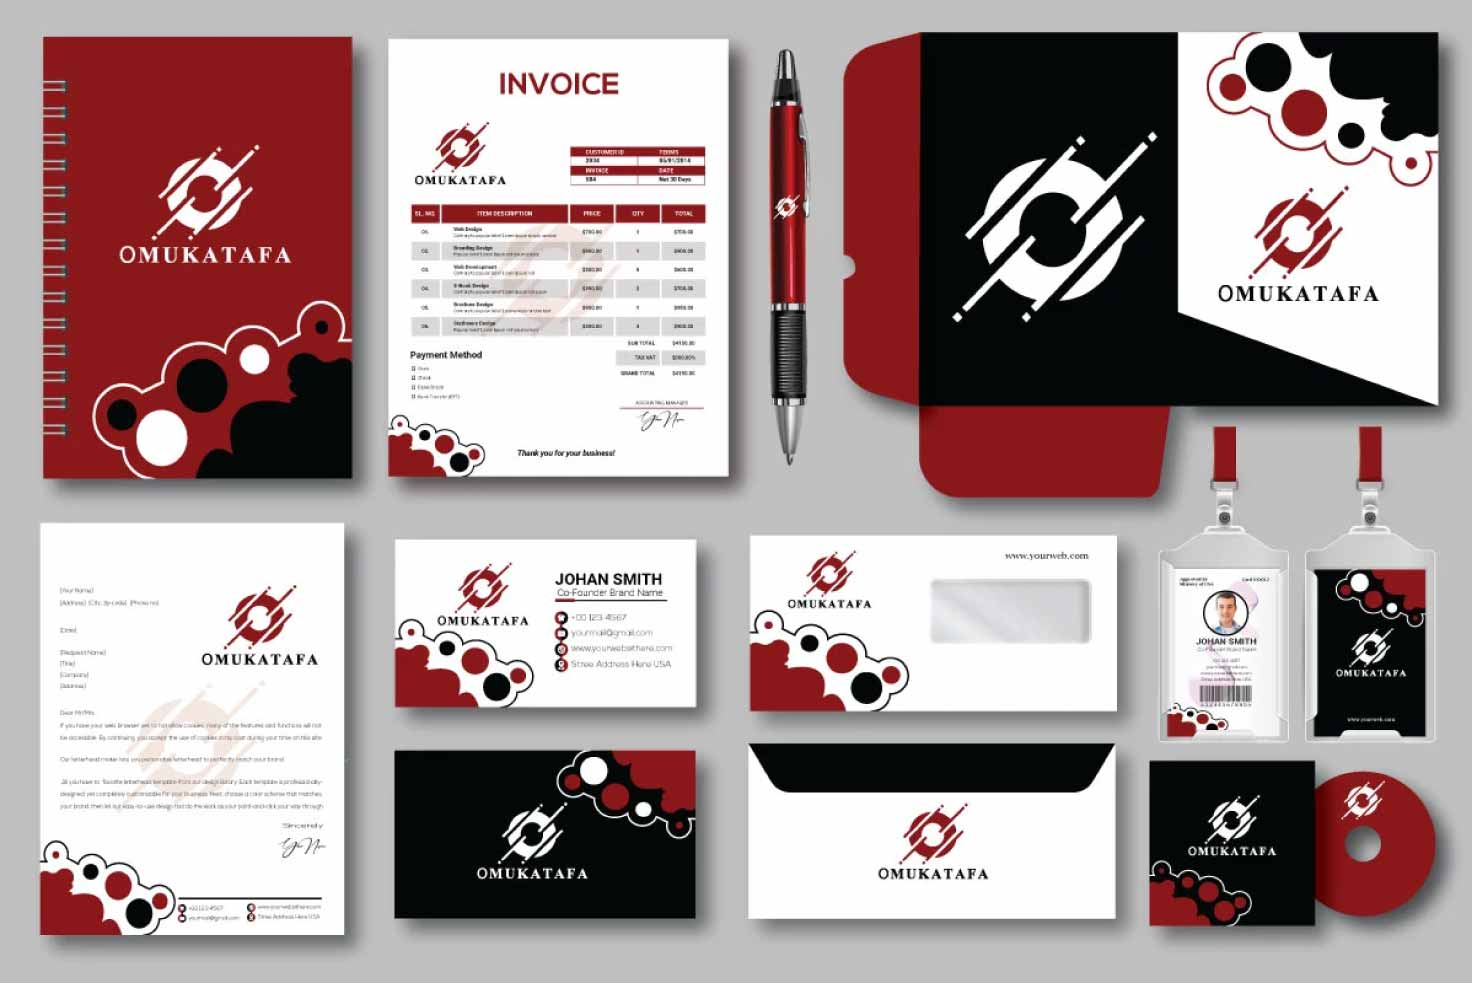 I will design business card letterhead and full stationery